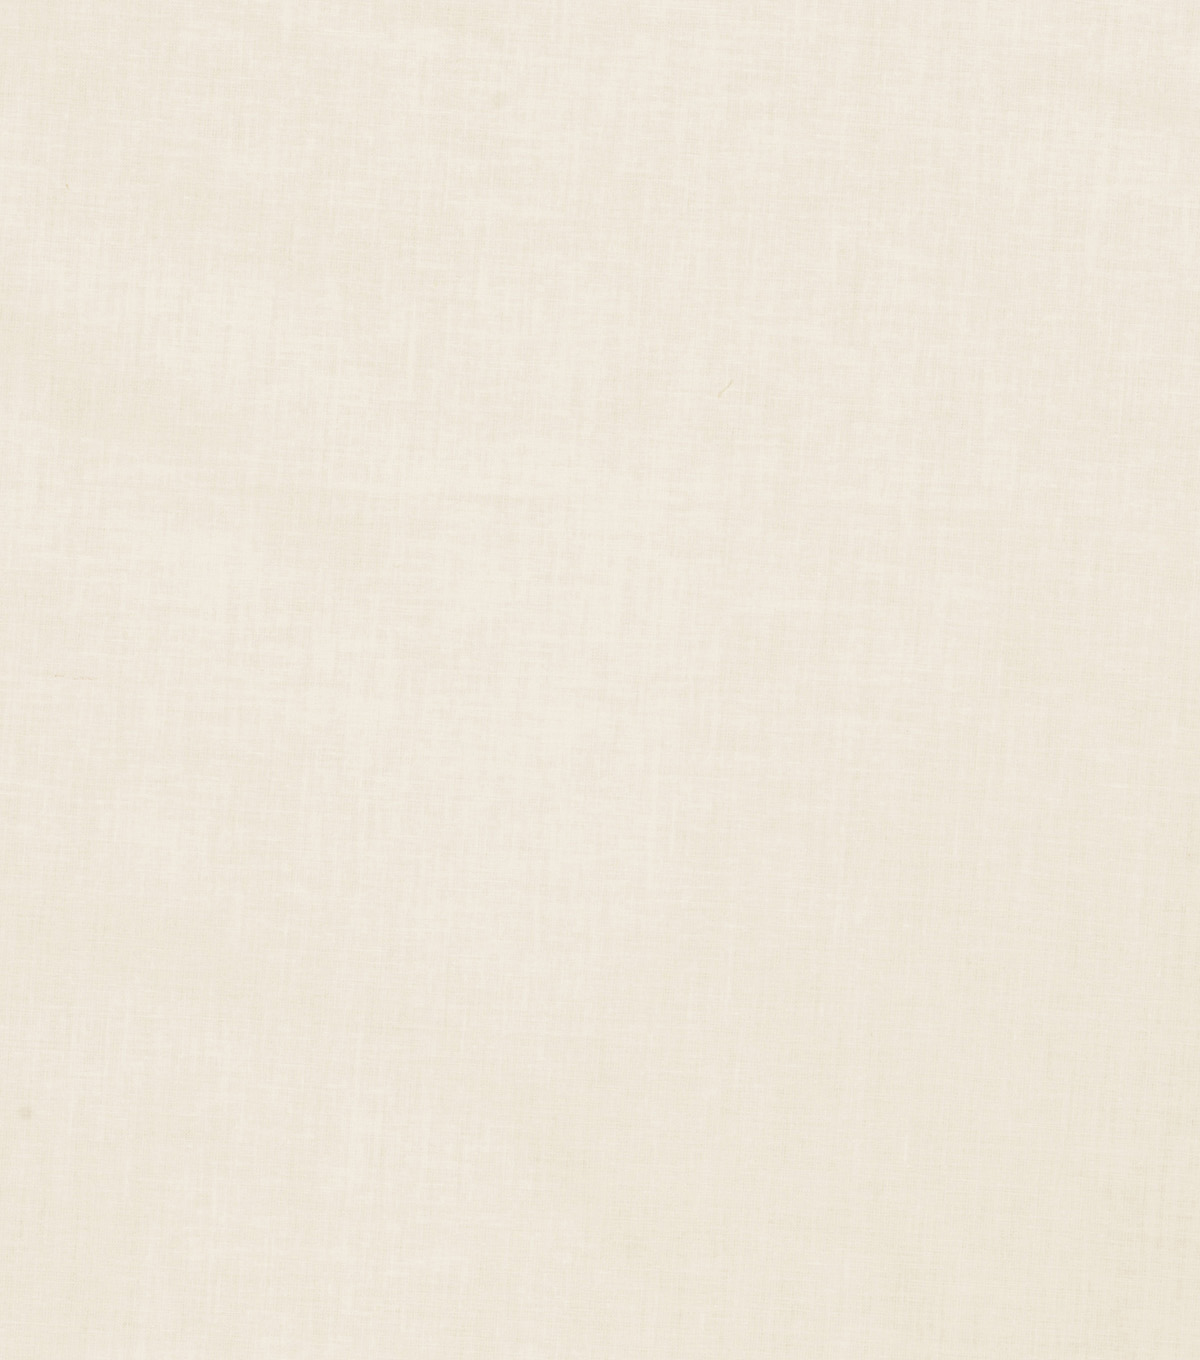 Roc-Lon Premium Cotton Lining Fabric 54\u0022-Ivory